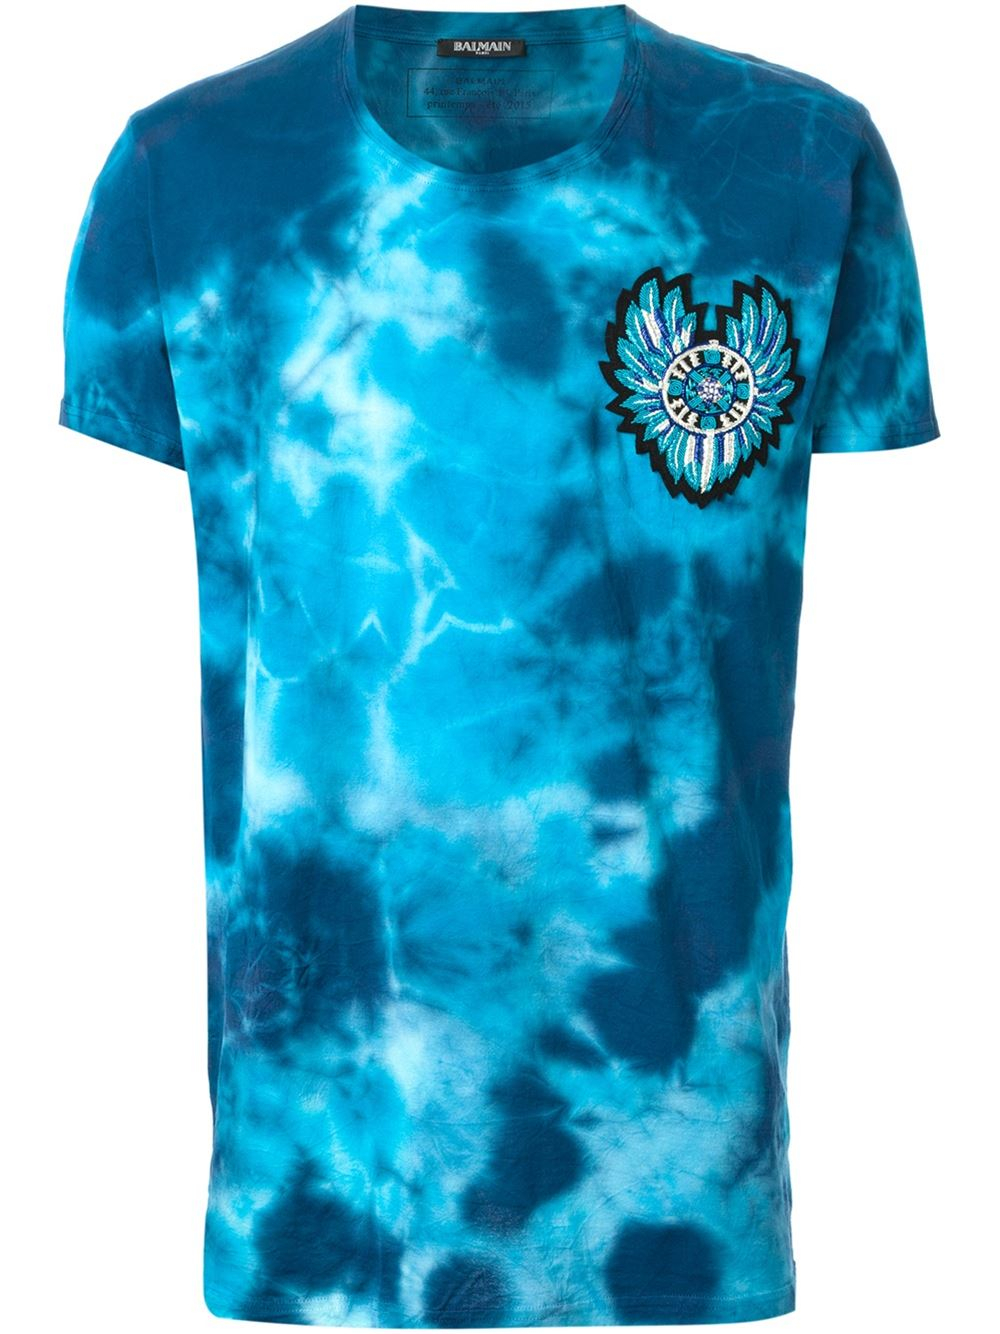 Lyst balmain tie dye t shirt in blue for men for Nike tie dye shirt and shorts